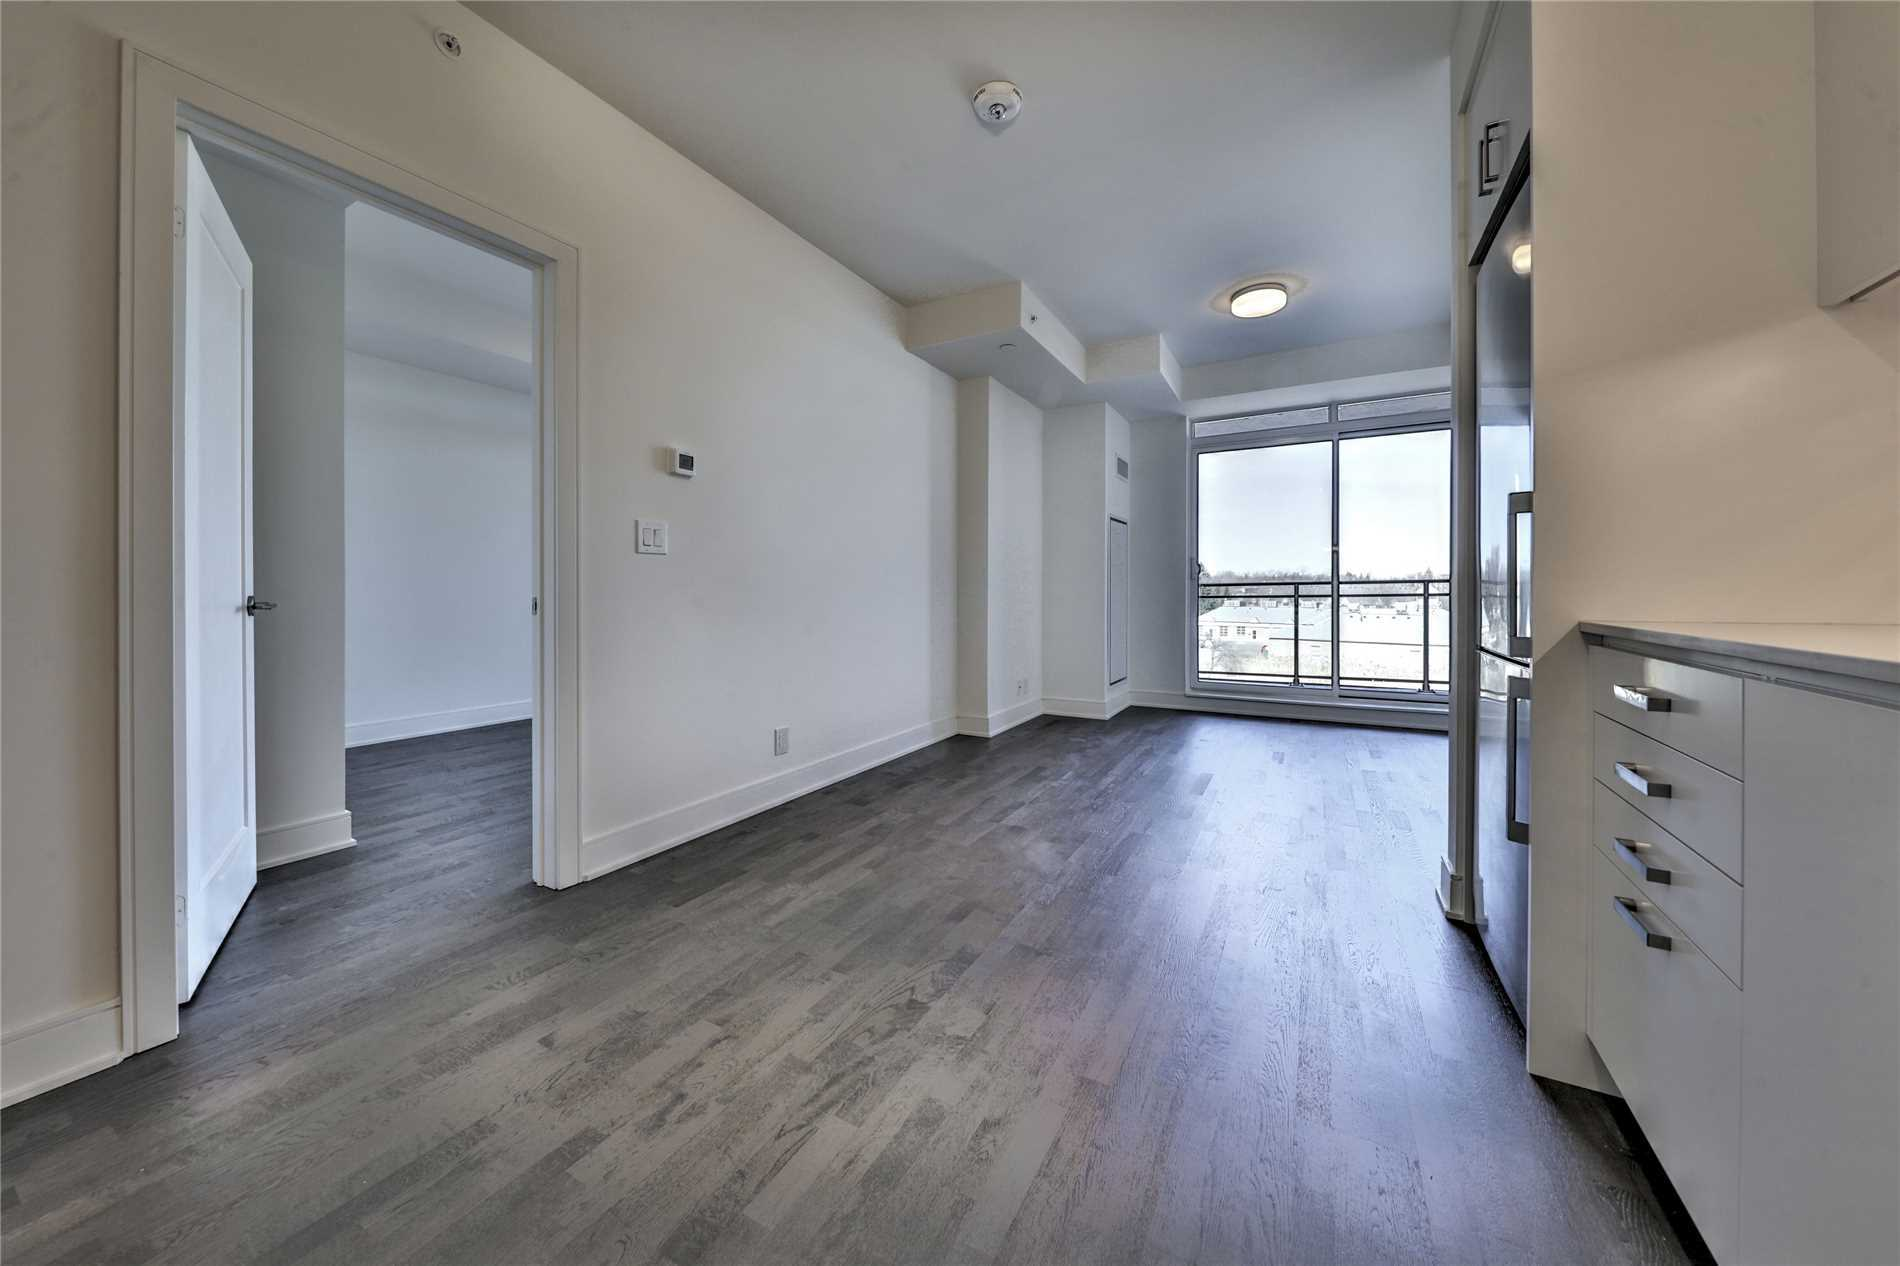 #226 - 1575 Lakeshore Rd W, Mississauga W4398605